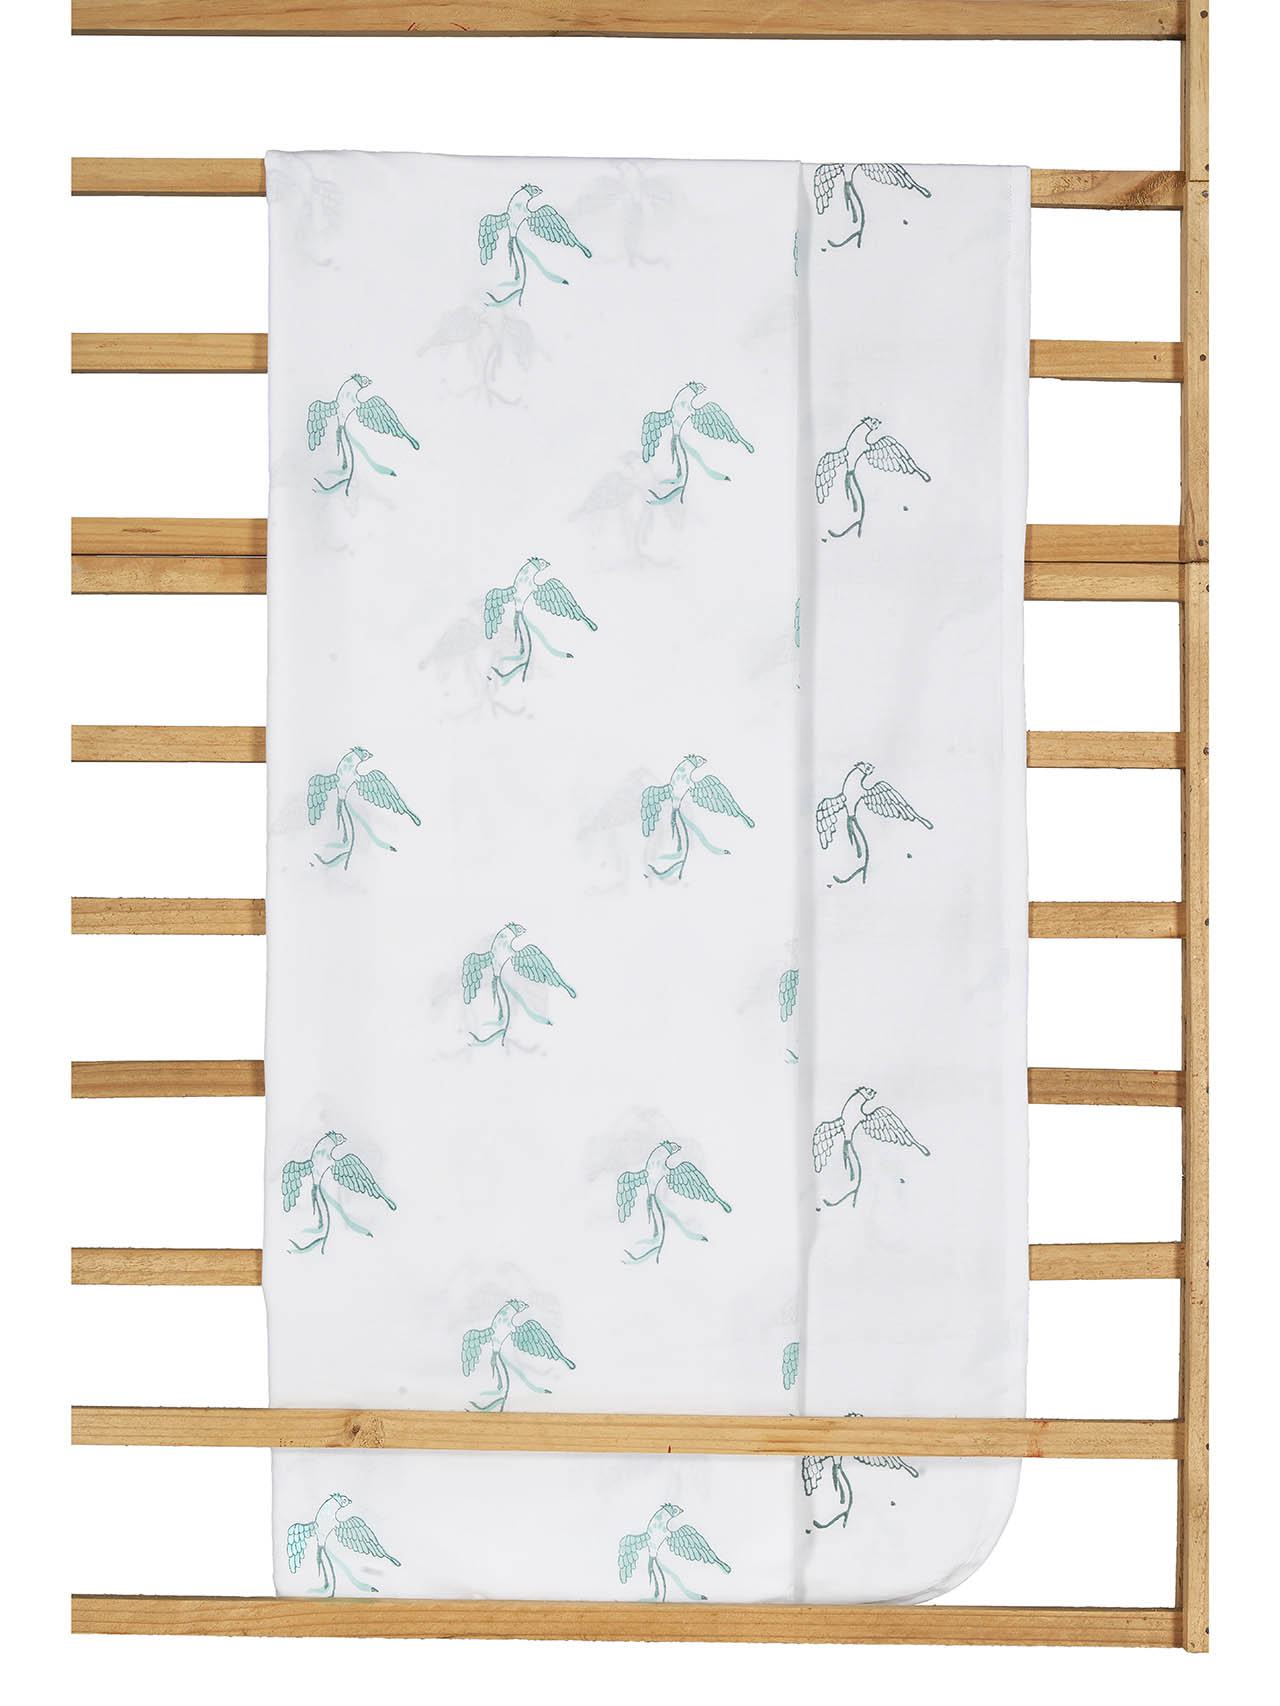 The tradition of crafting baby blankets from fine mulmul is centuries old – cotton voile (mulmul) fabrics are soft, durable, breathable and have a natural 'give'. Our classic baby blankets feature three layers of 100% cotton mulmul in a 44-inch square, specifically designed to provide babies with the comfort they deserve. Use it for cuddling, swaddling or as a 'snuggly' surface to lay your little one. Our mulmul is prewashed to give you an incredibly soft baby blanket that stays that way, wash after wash. Block printed by hand, every motif on theblanket is unique: the pattern on the front is colored while the reverse is it's simplified variant.